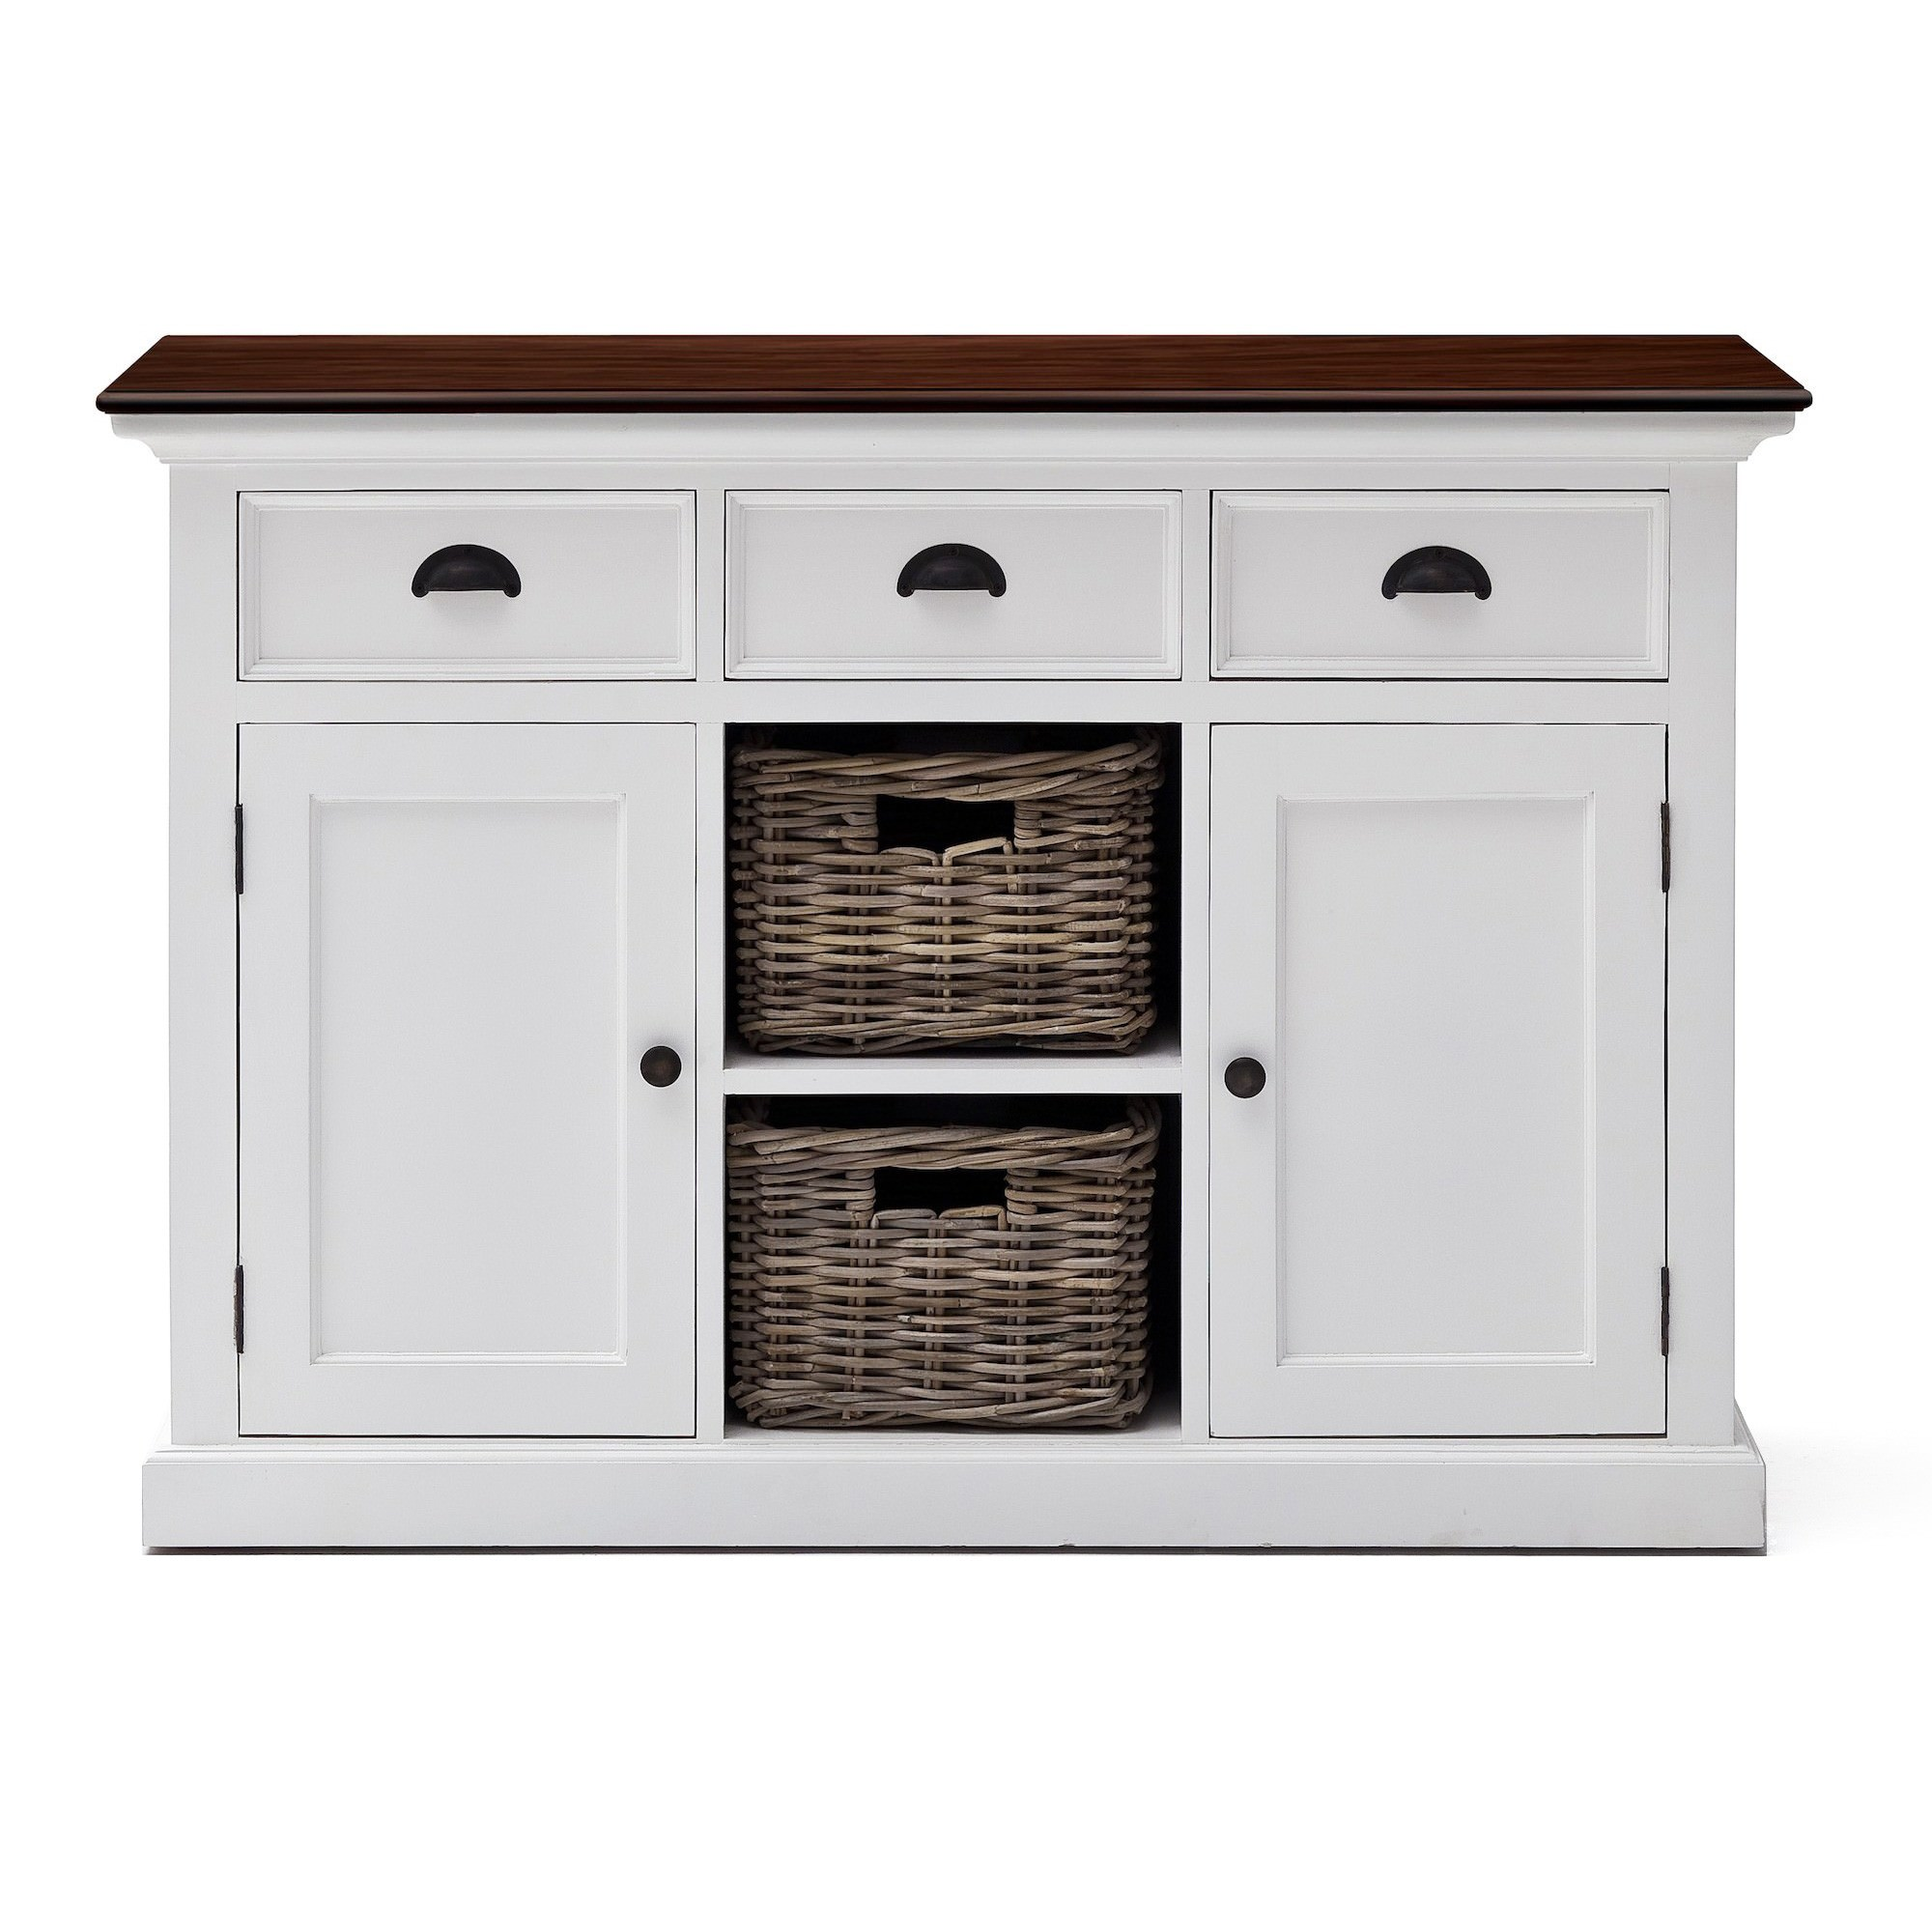 Halifax Contrast Mahogany Timber 2 Door 3 Drawer Buffet Table with Rattan Baskets, 125cm, Brown / Distressed White